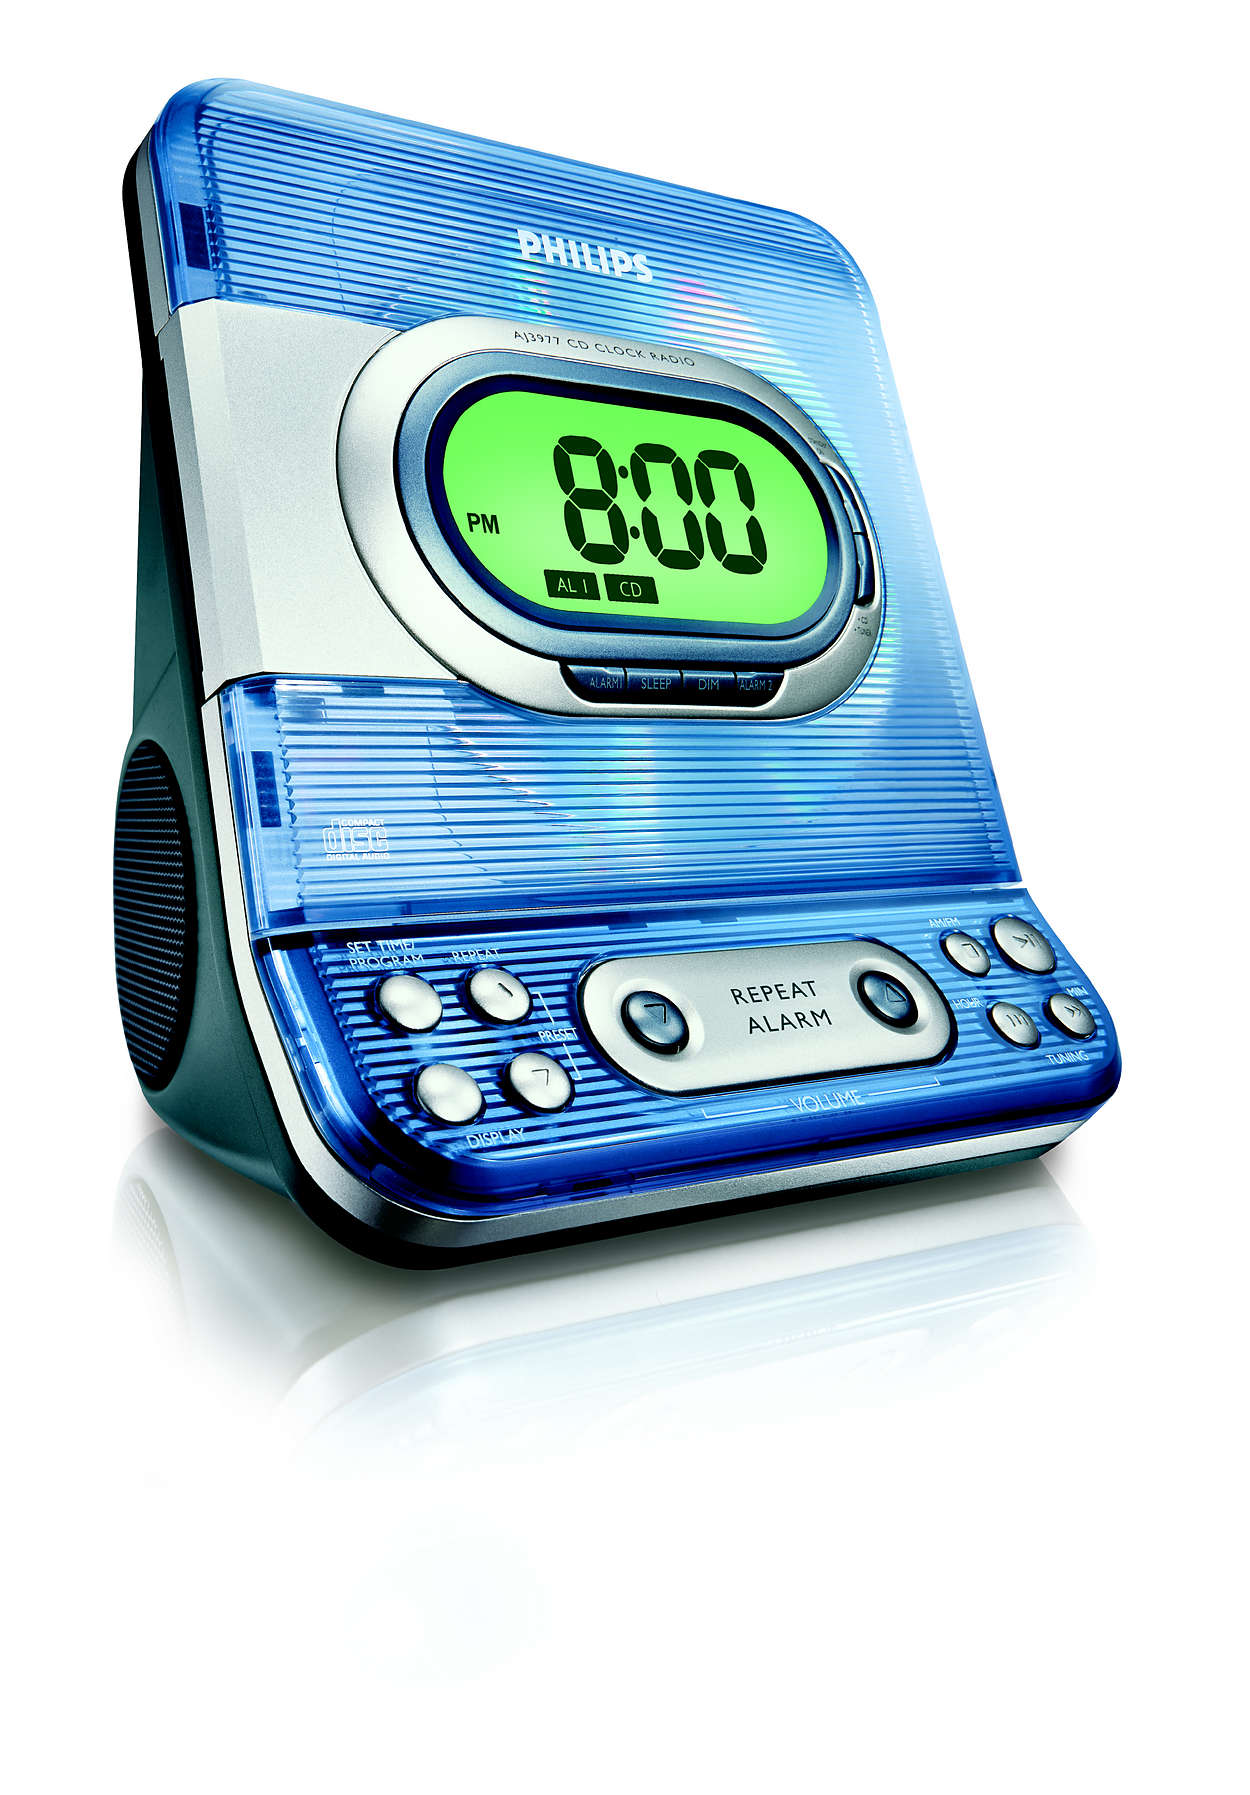 Alarm clock with CD playback